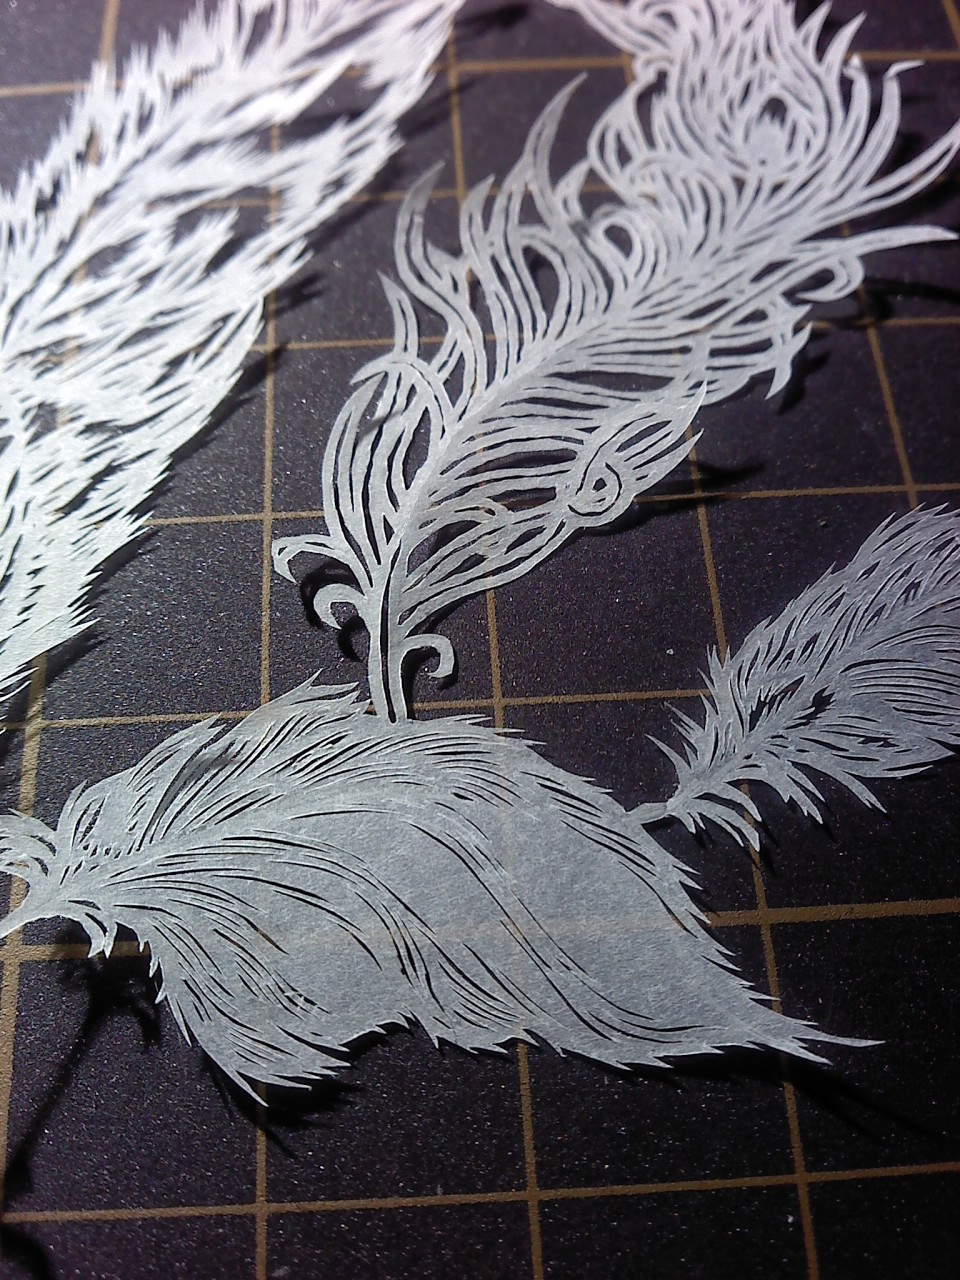 part of paper cutting works by Thessatoria